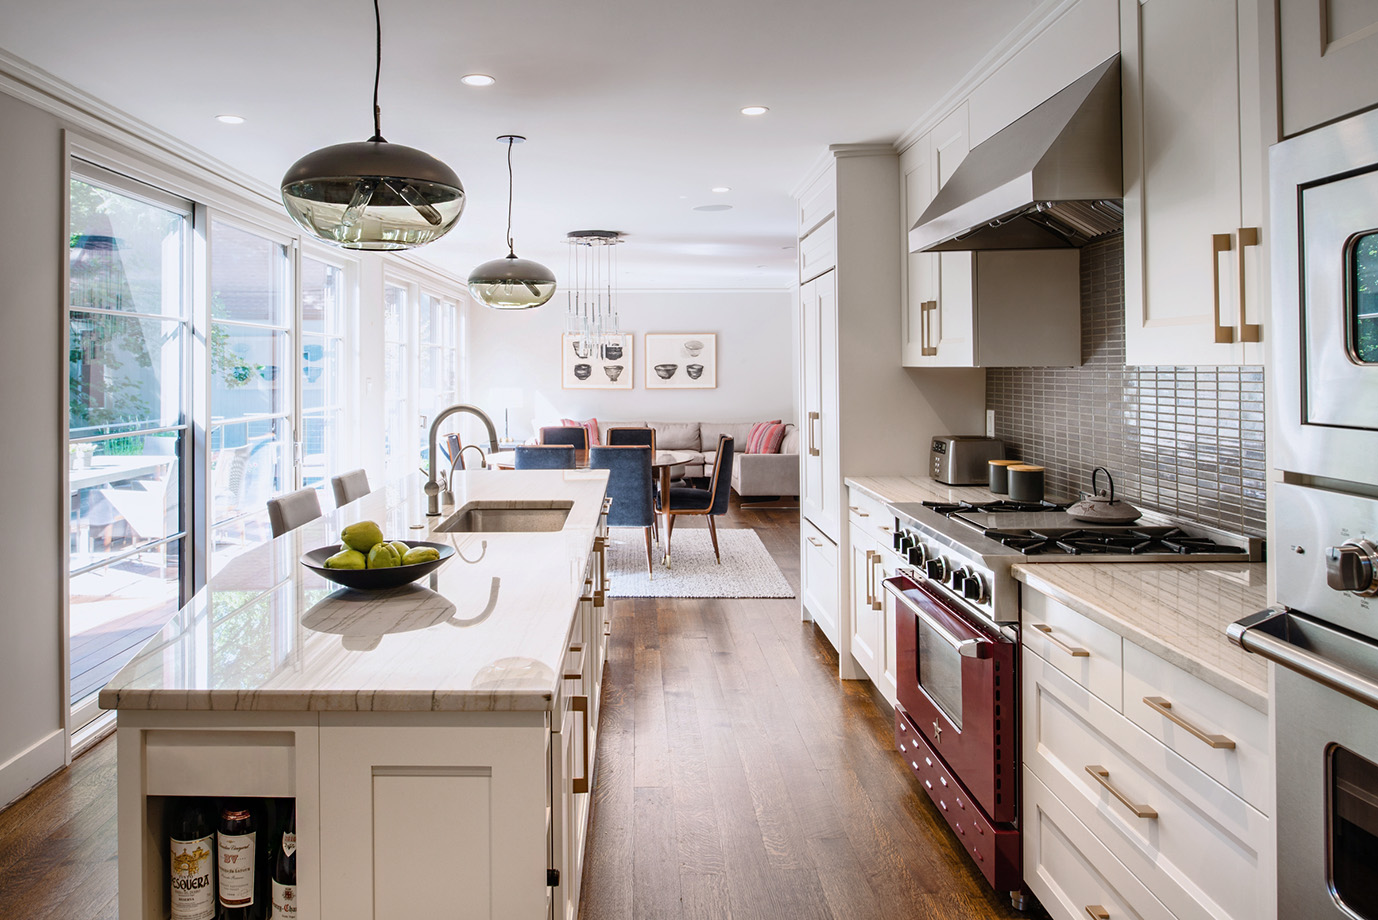 Open floor plan creates a nice flow from kitchen to dining